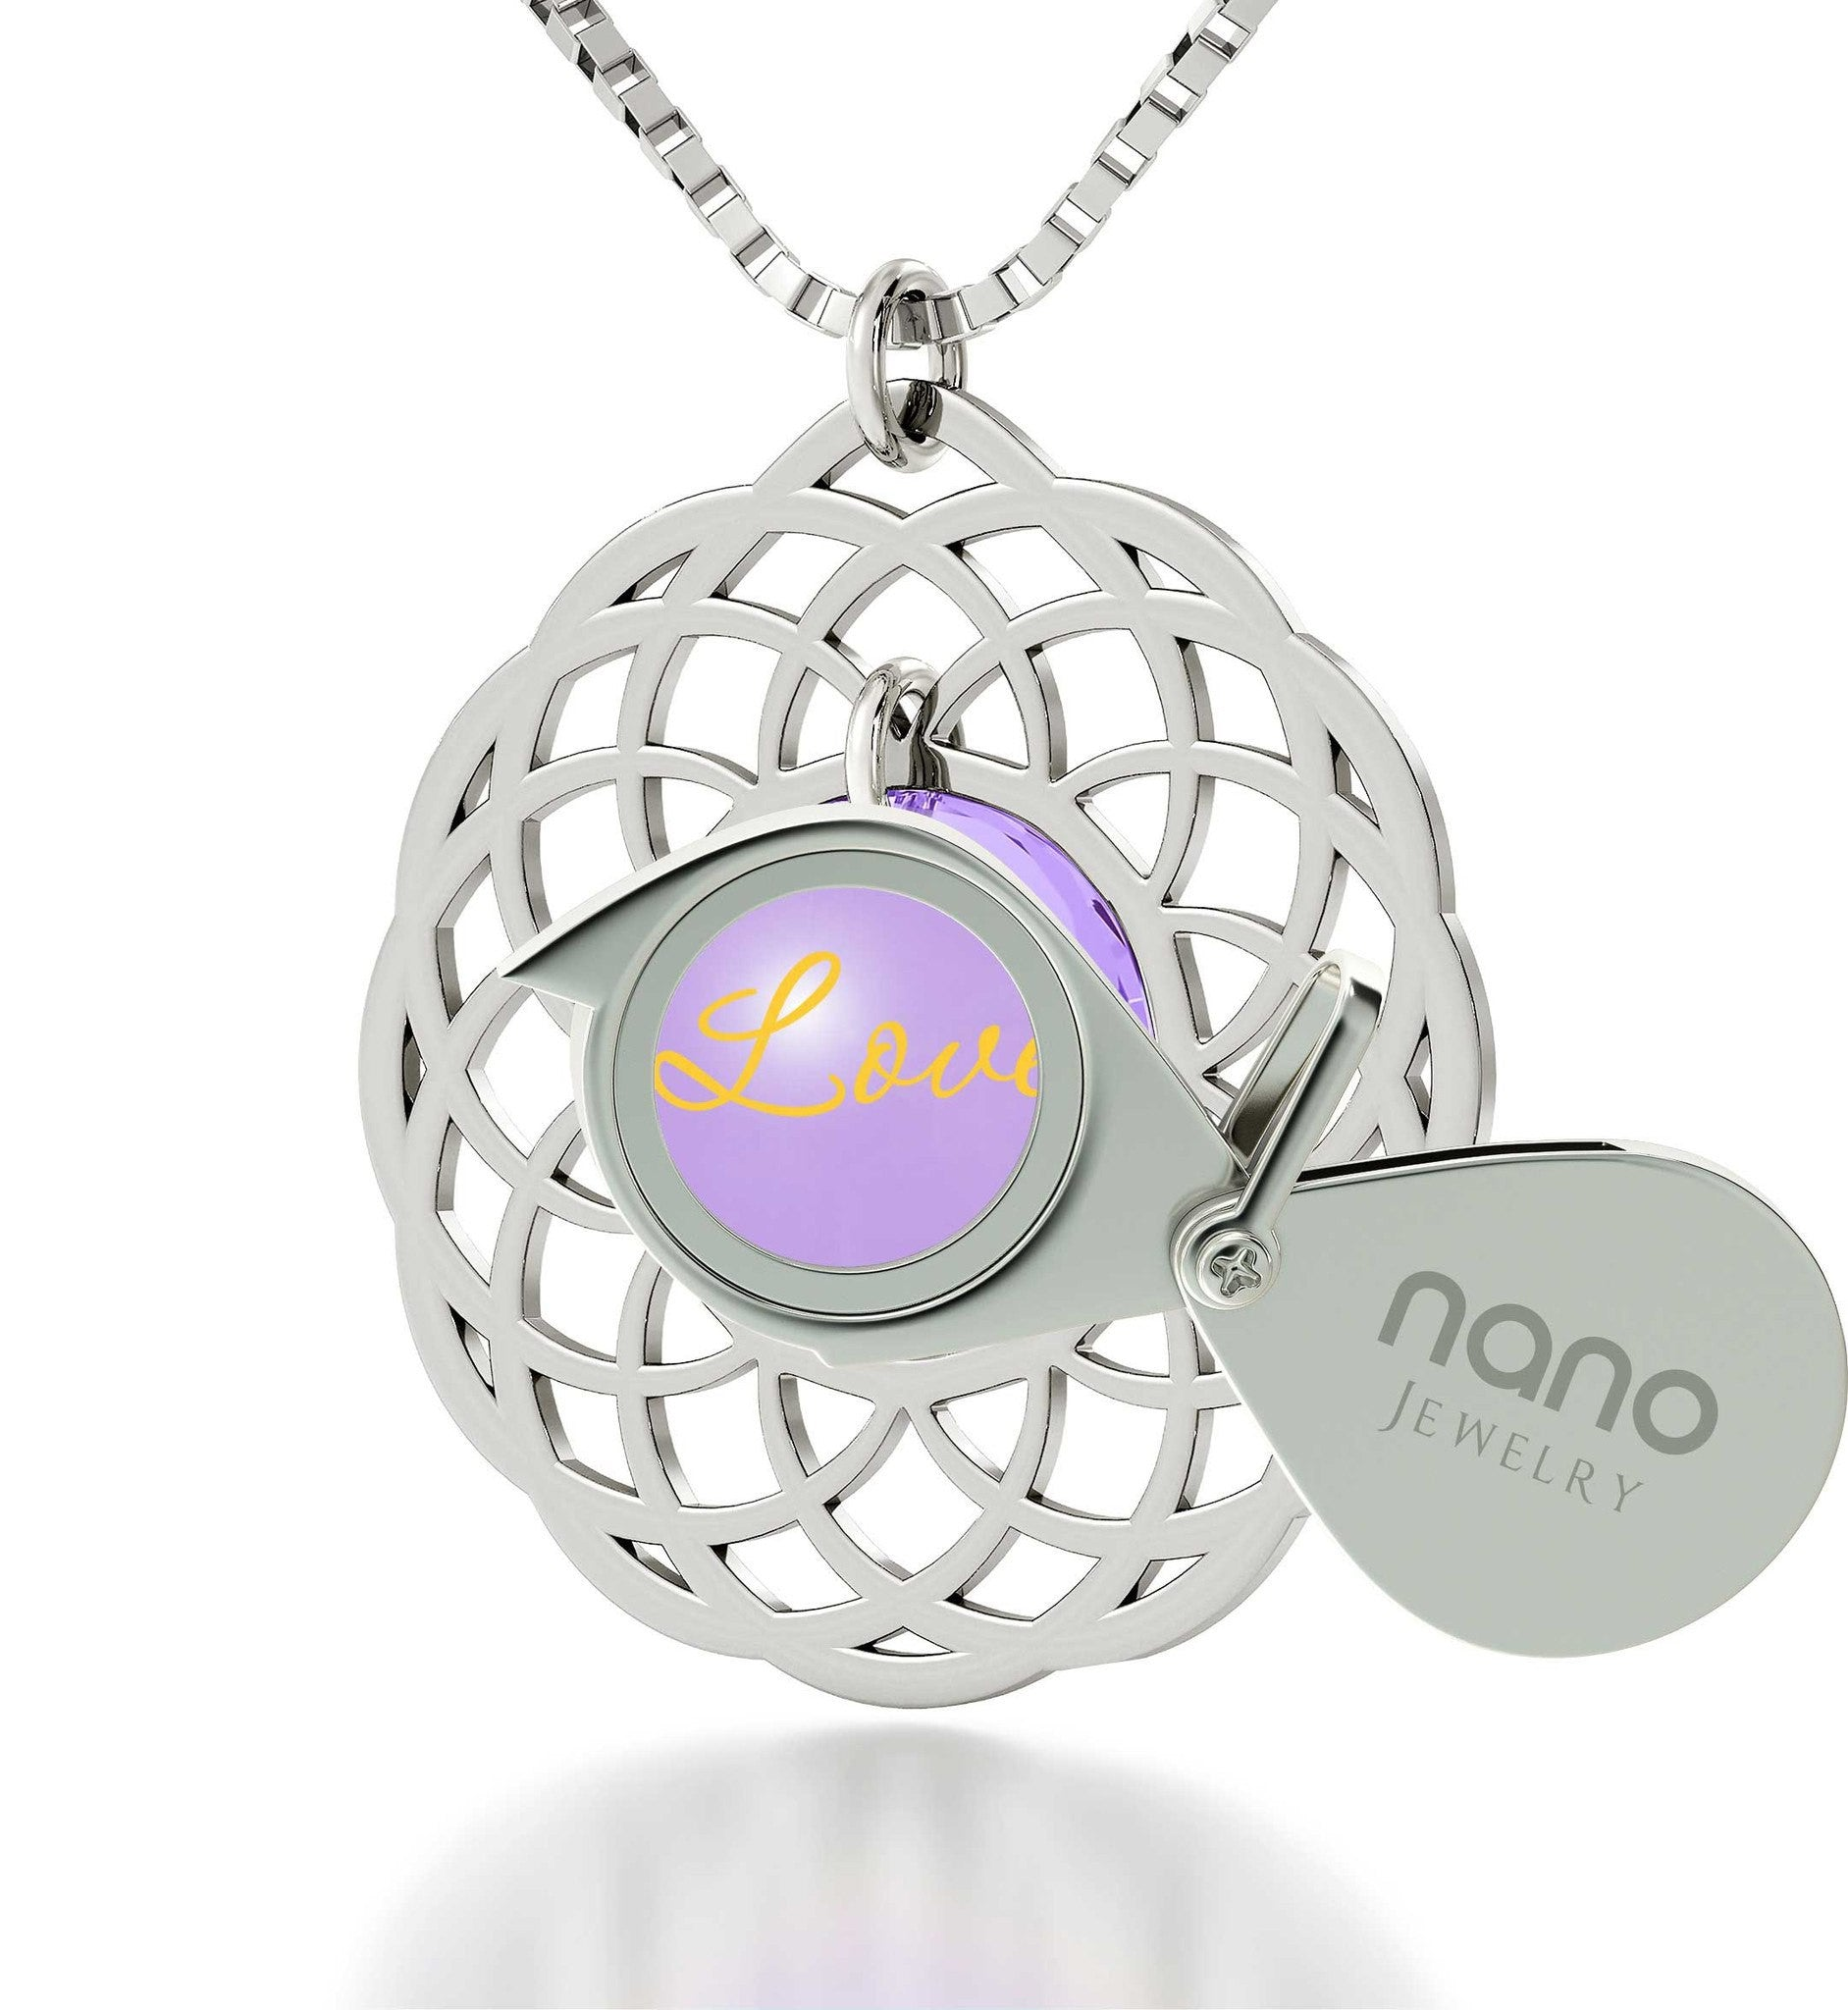 Xmas Ideas for Her, Purple Pendant, CZ Jewelry, Good Anniversary Gifts for Her, Nano